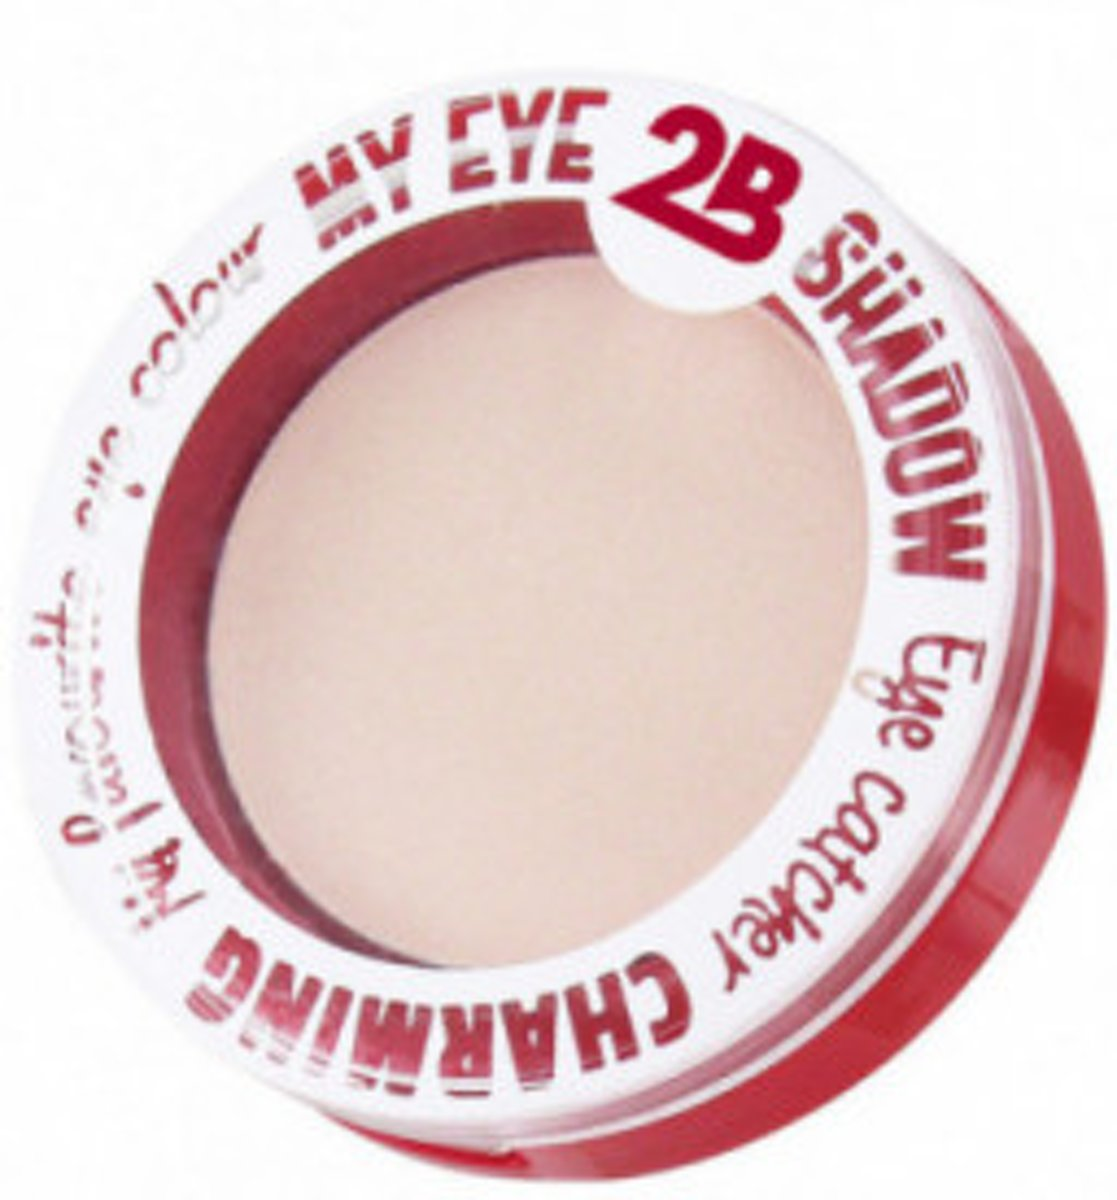 2B-oogschaduw My eyeshadow 52 peach